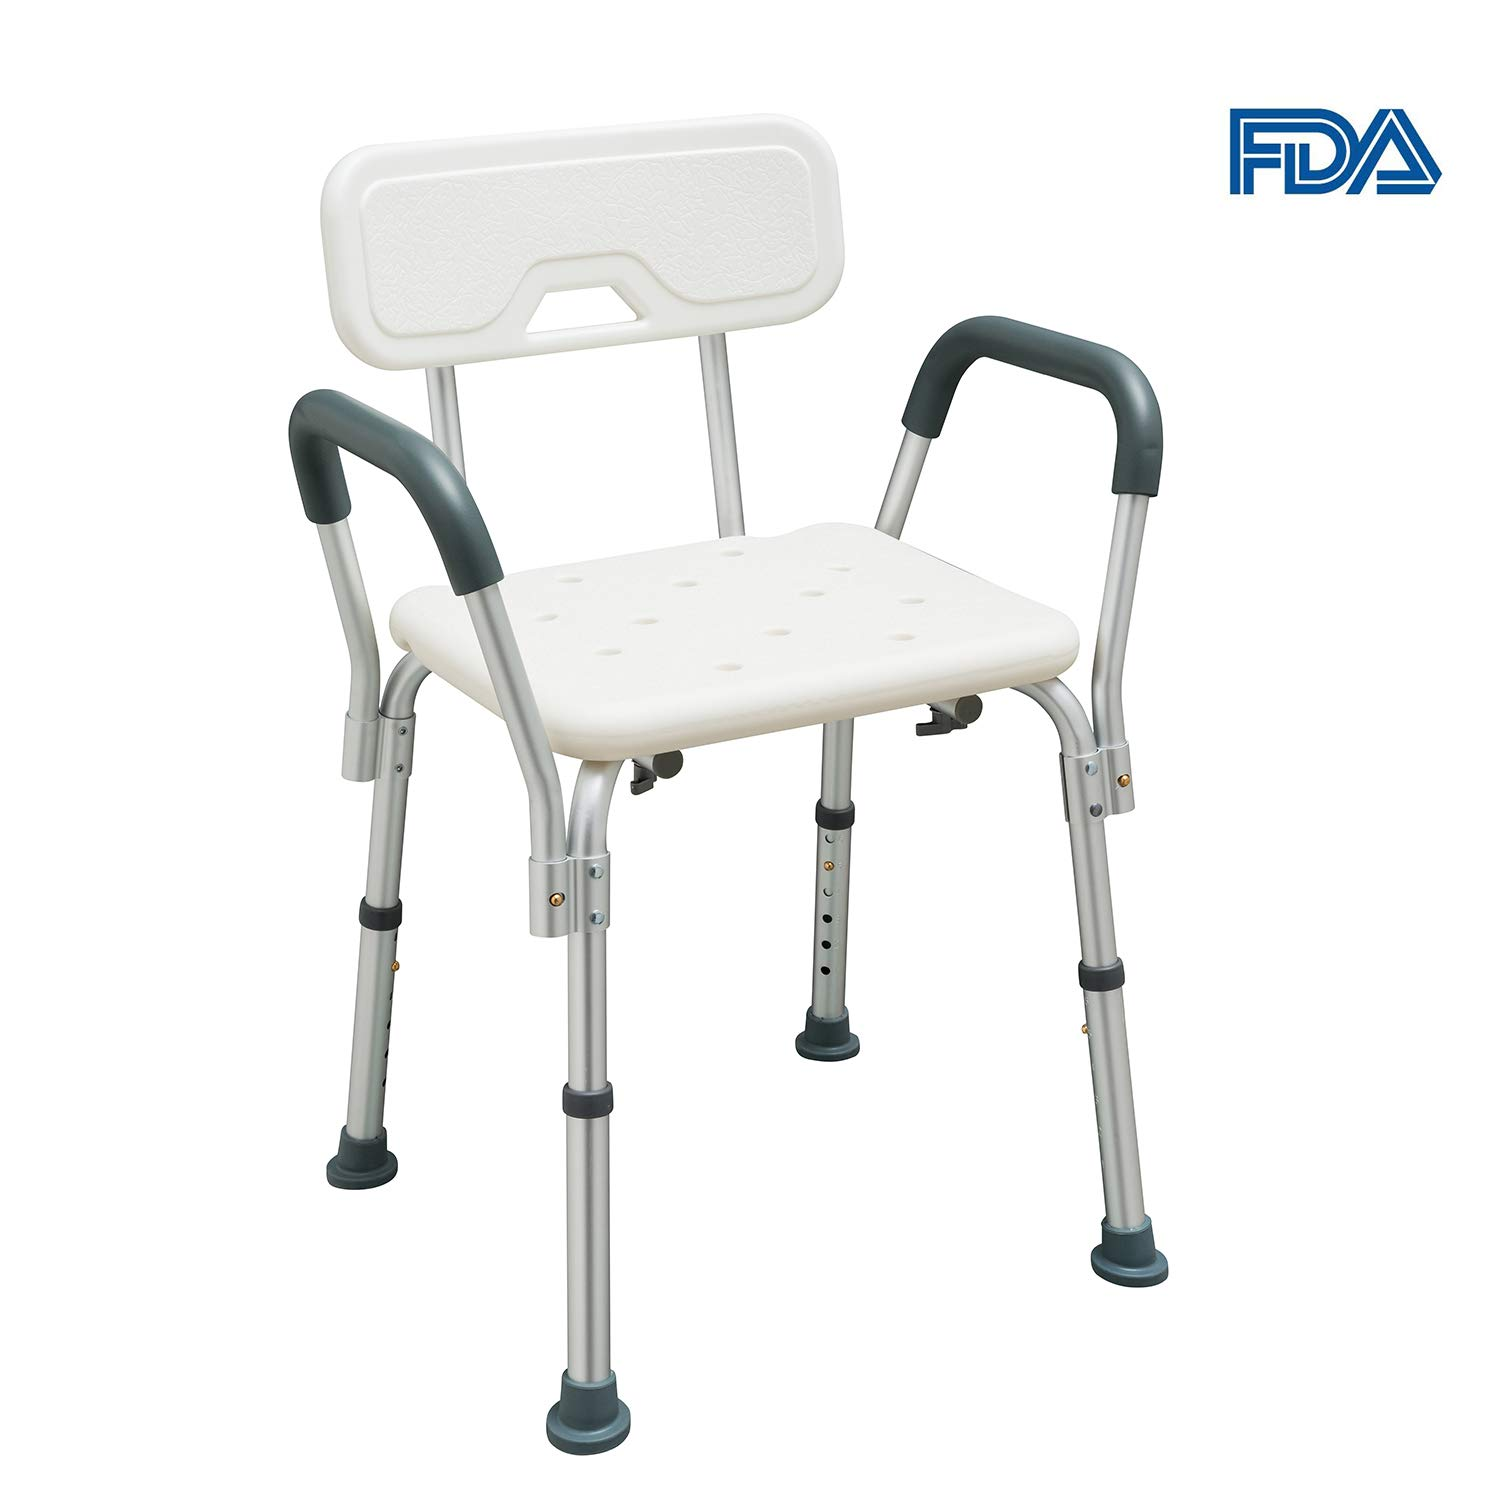 Jacia House Assembly Adjustable Shower Chair, Portable Bath Seat, White Shower Bench with Arms (White, Chair with Arms)